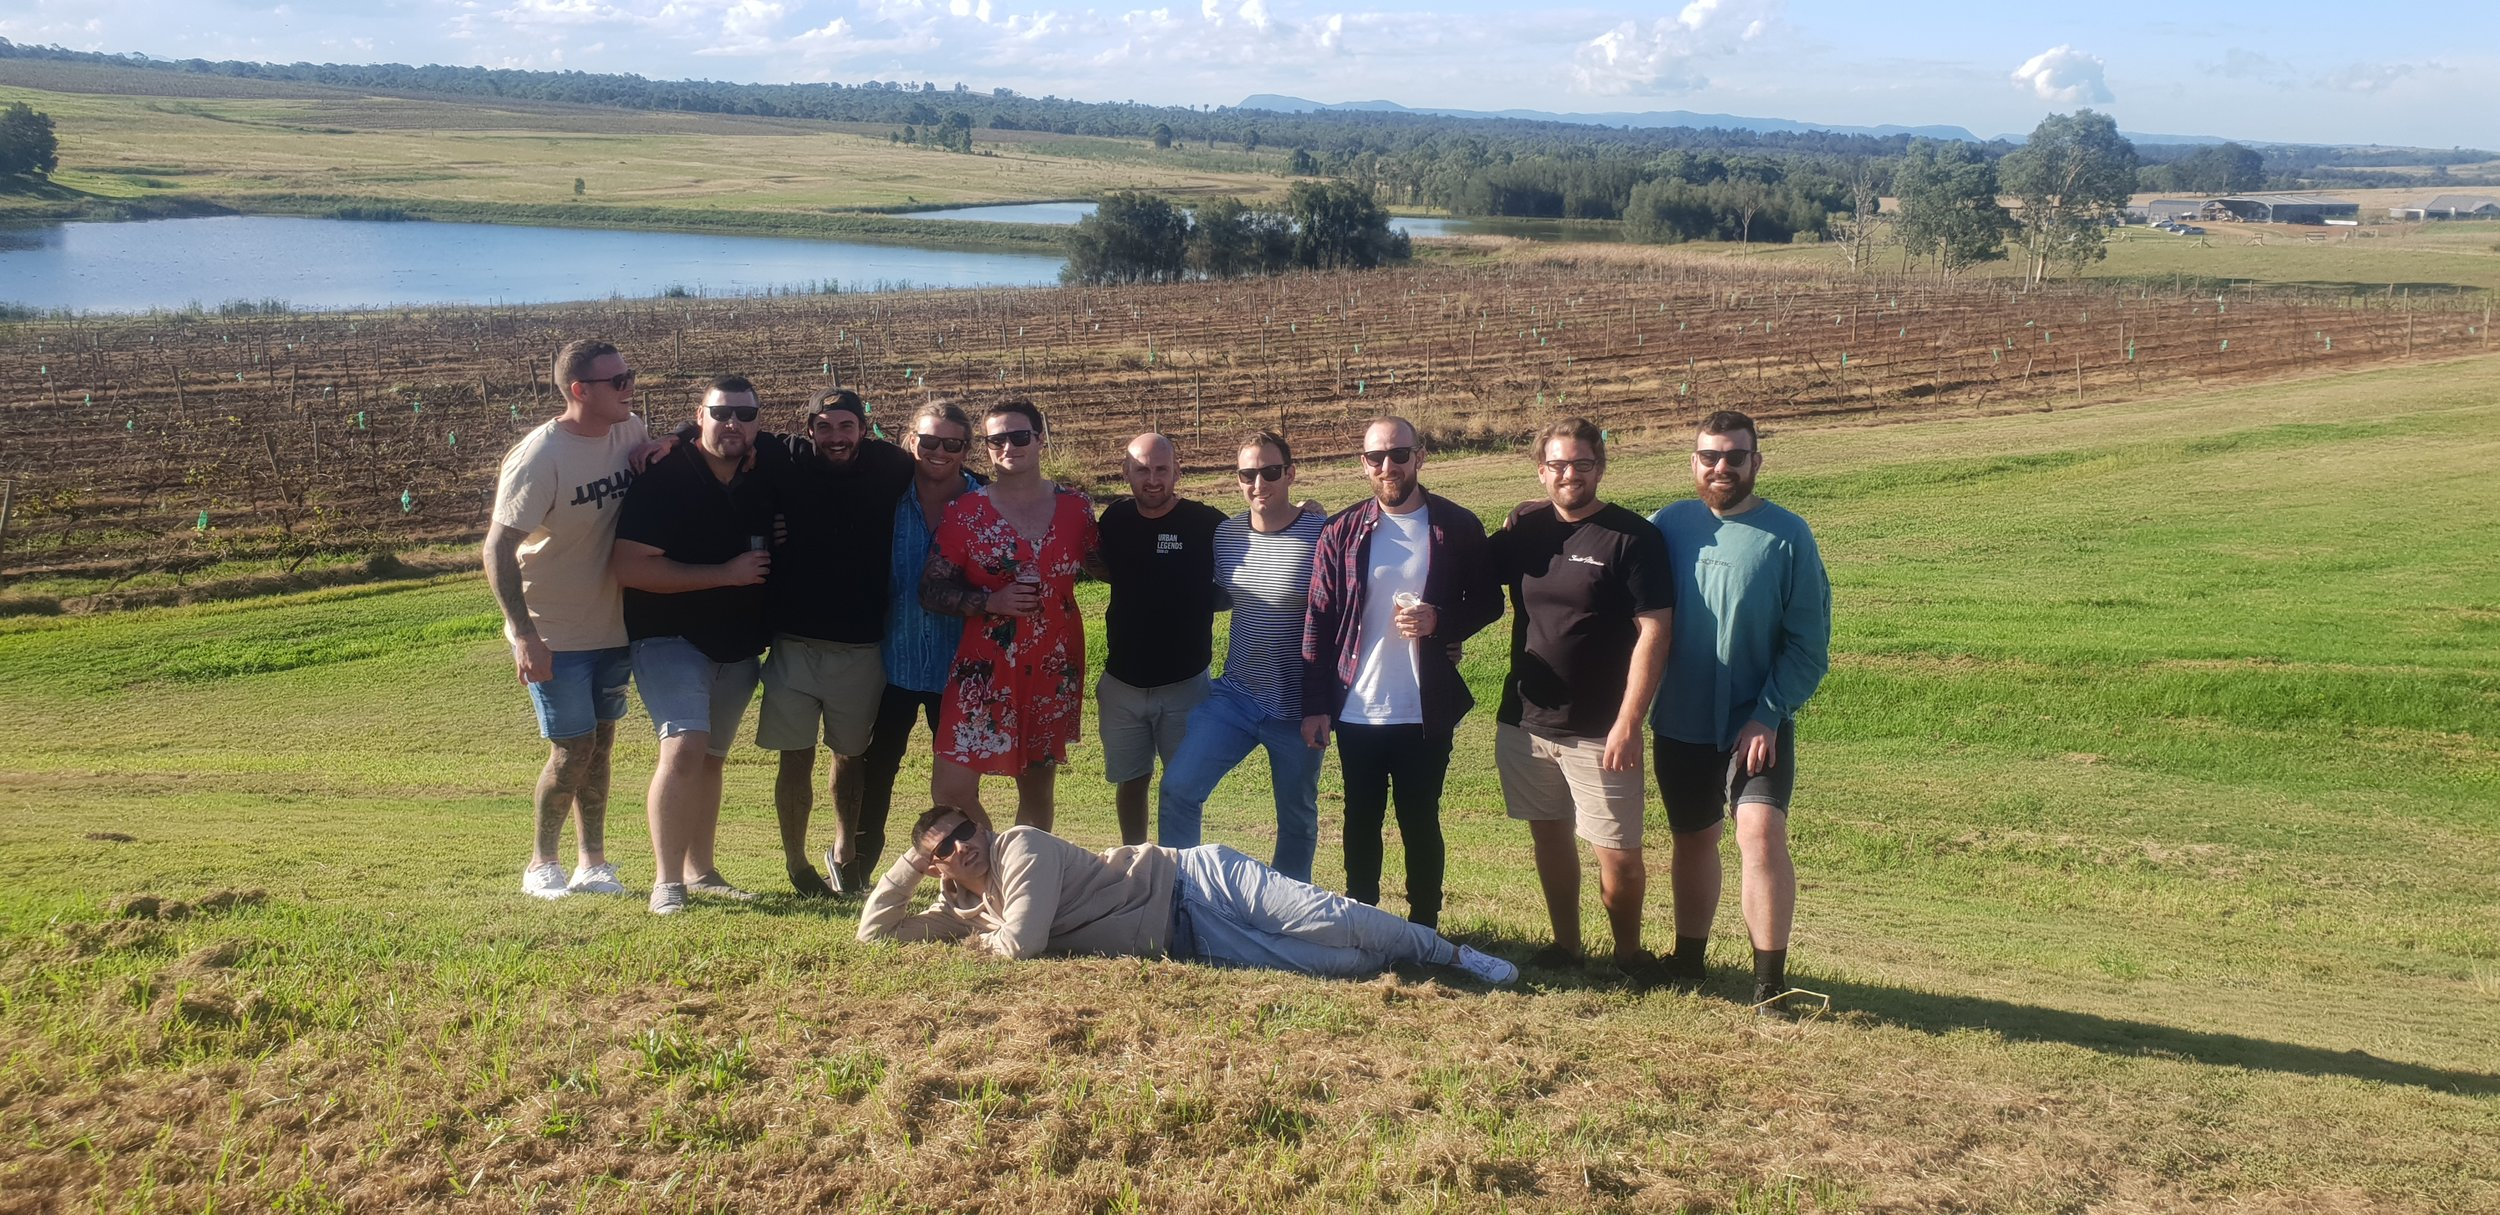 Hunter Valley Brewery Tour Bucks Party.jpg